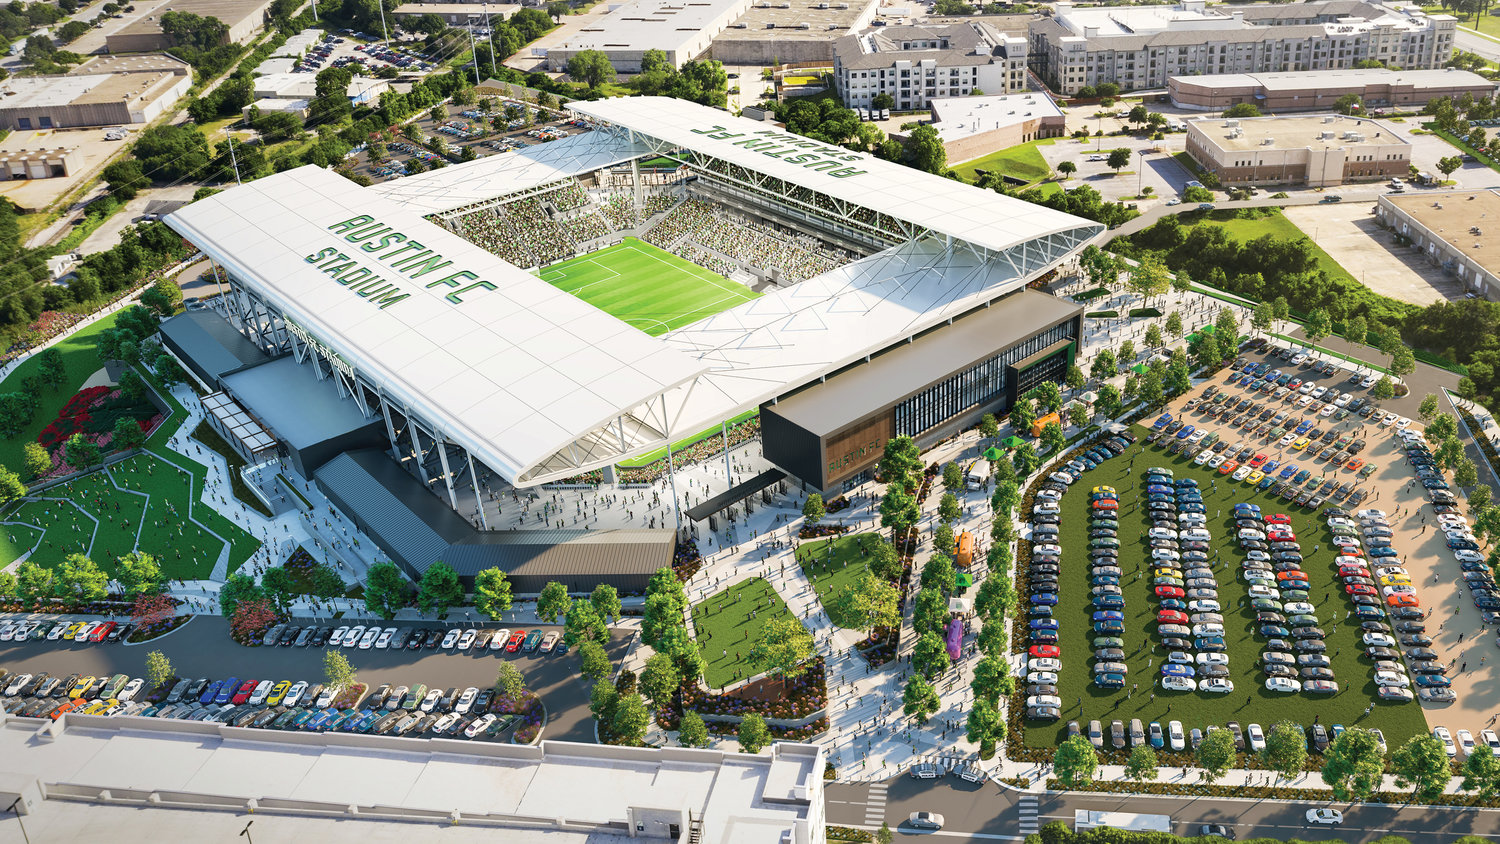 Austin FC will break ground on its new stadium at McKalla Place on Sept. 5, according to a presentation released by club officials on Wednesday.